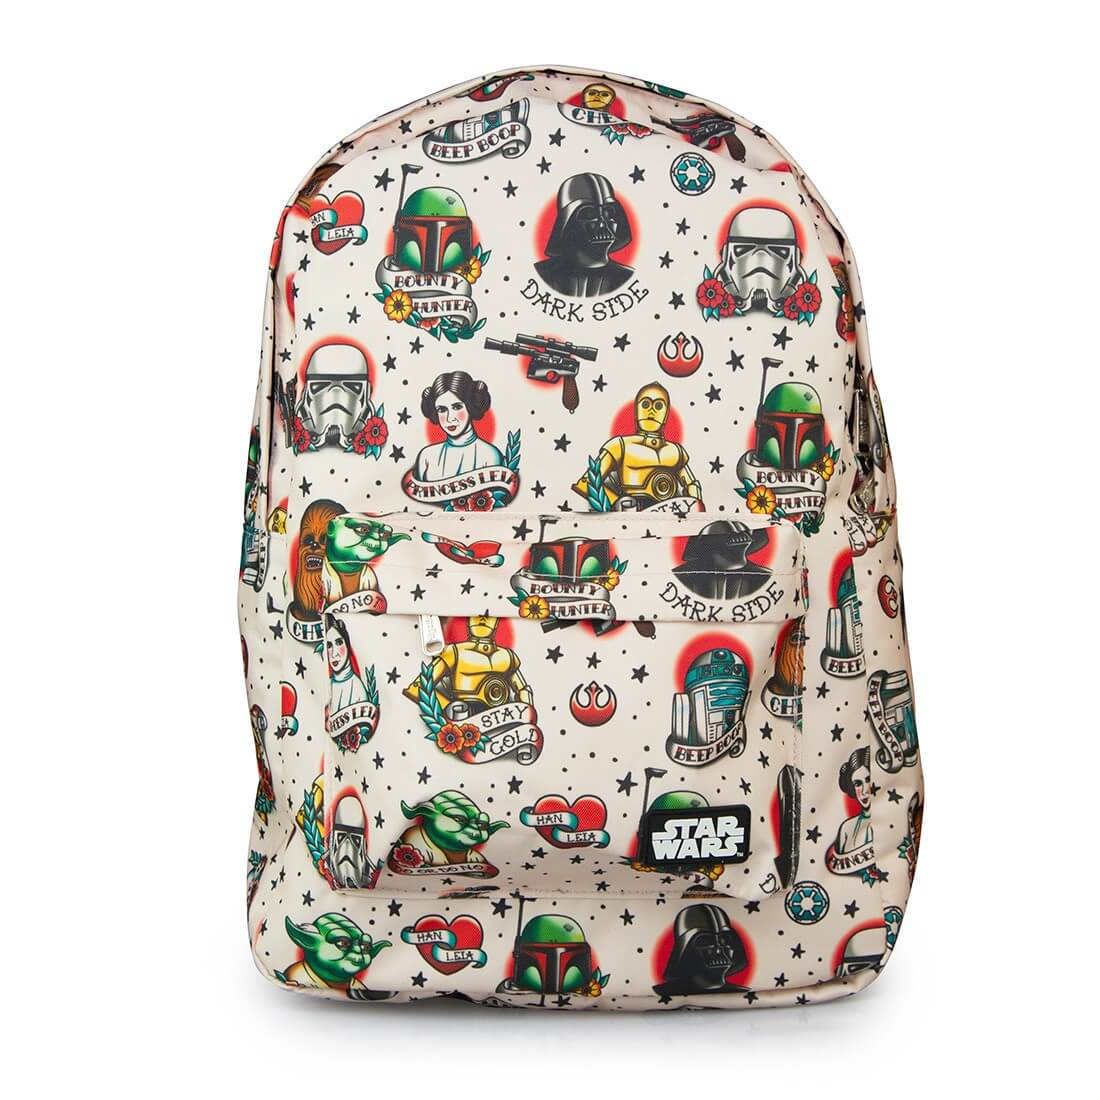 Star Wars cool backpacks for back-to-school